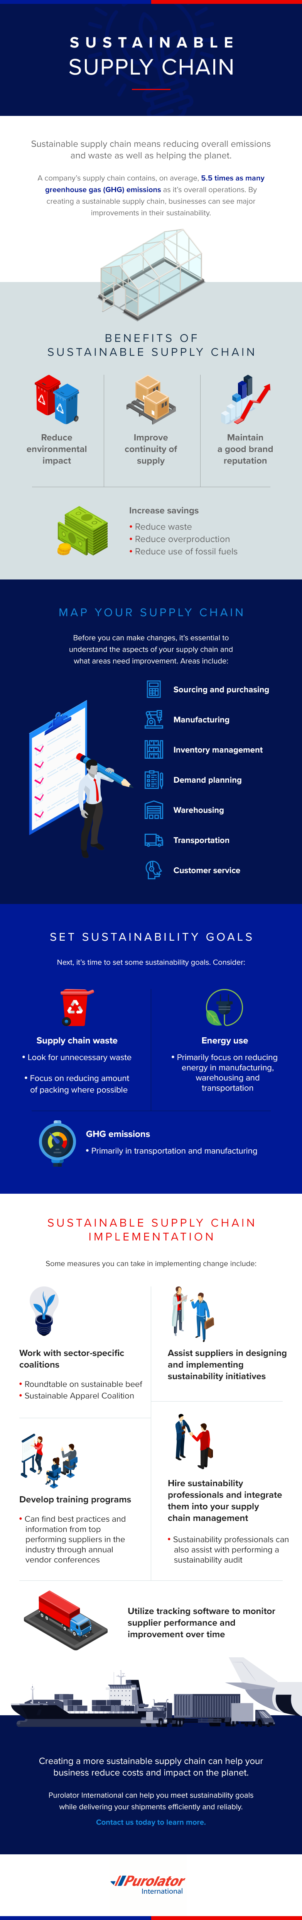 Sustainable supply chain infographic